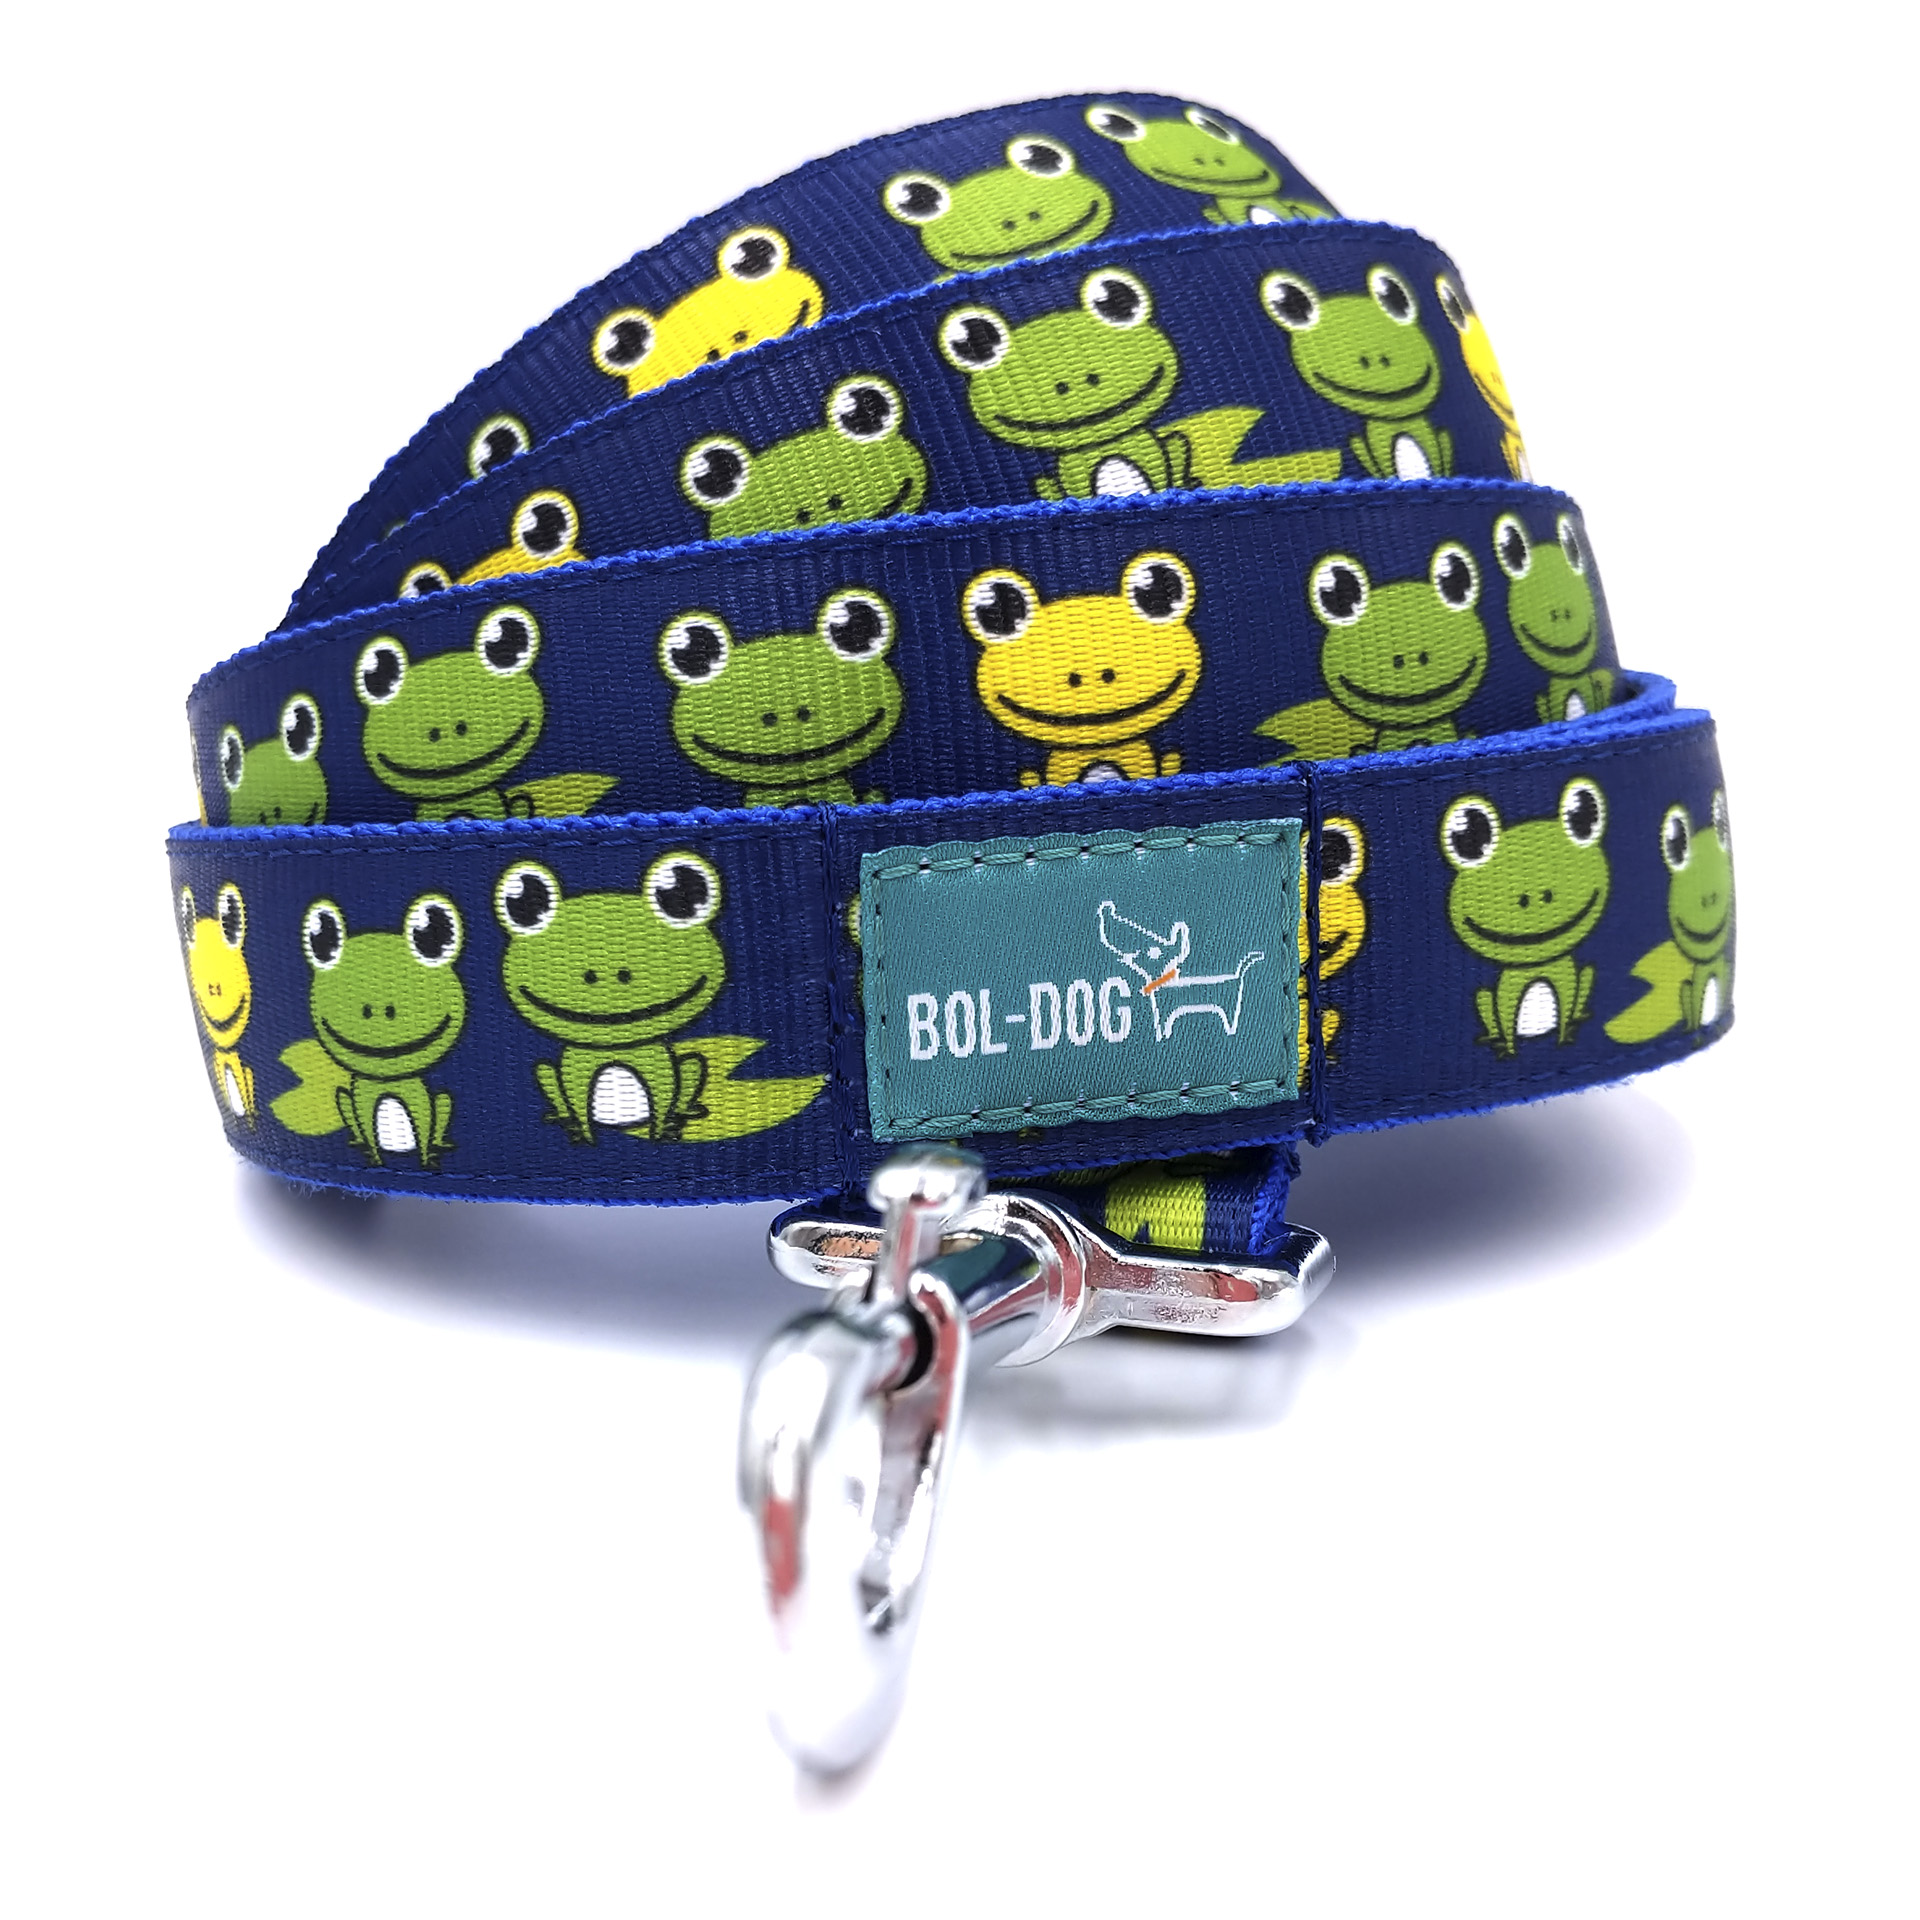 Frog dog leash